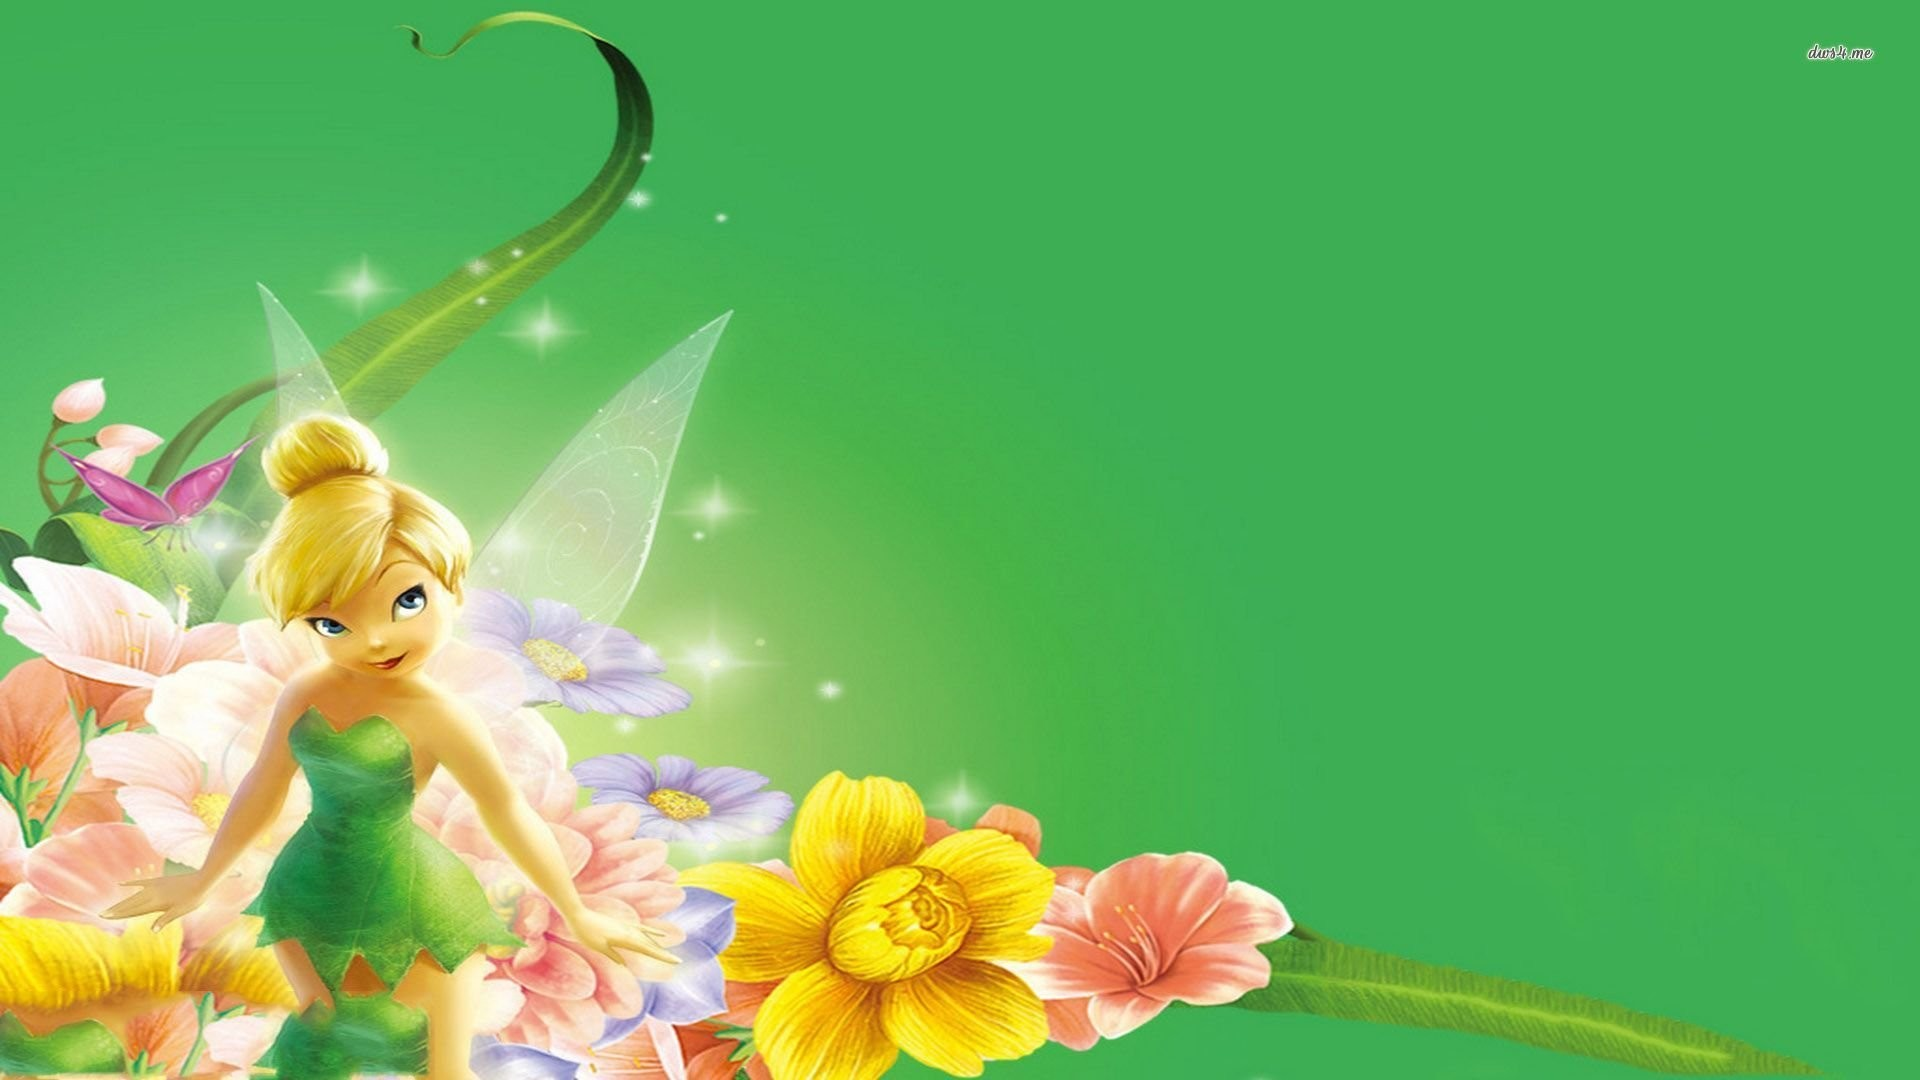 1920x1080 - Tinkerbell Pictures 21